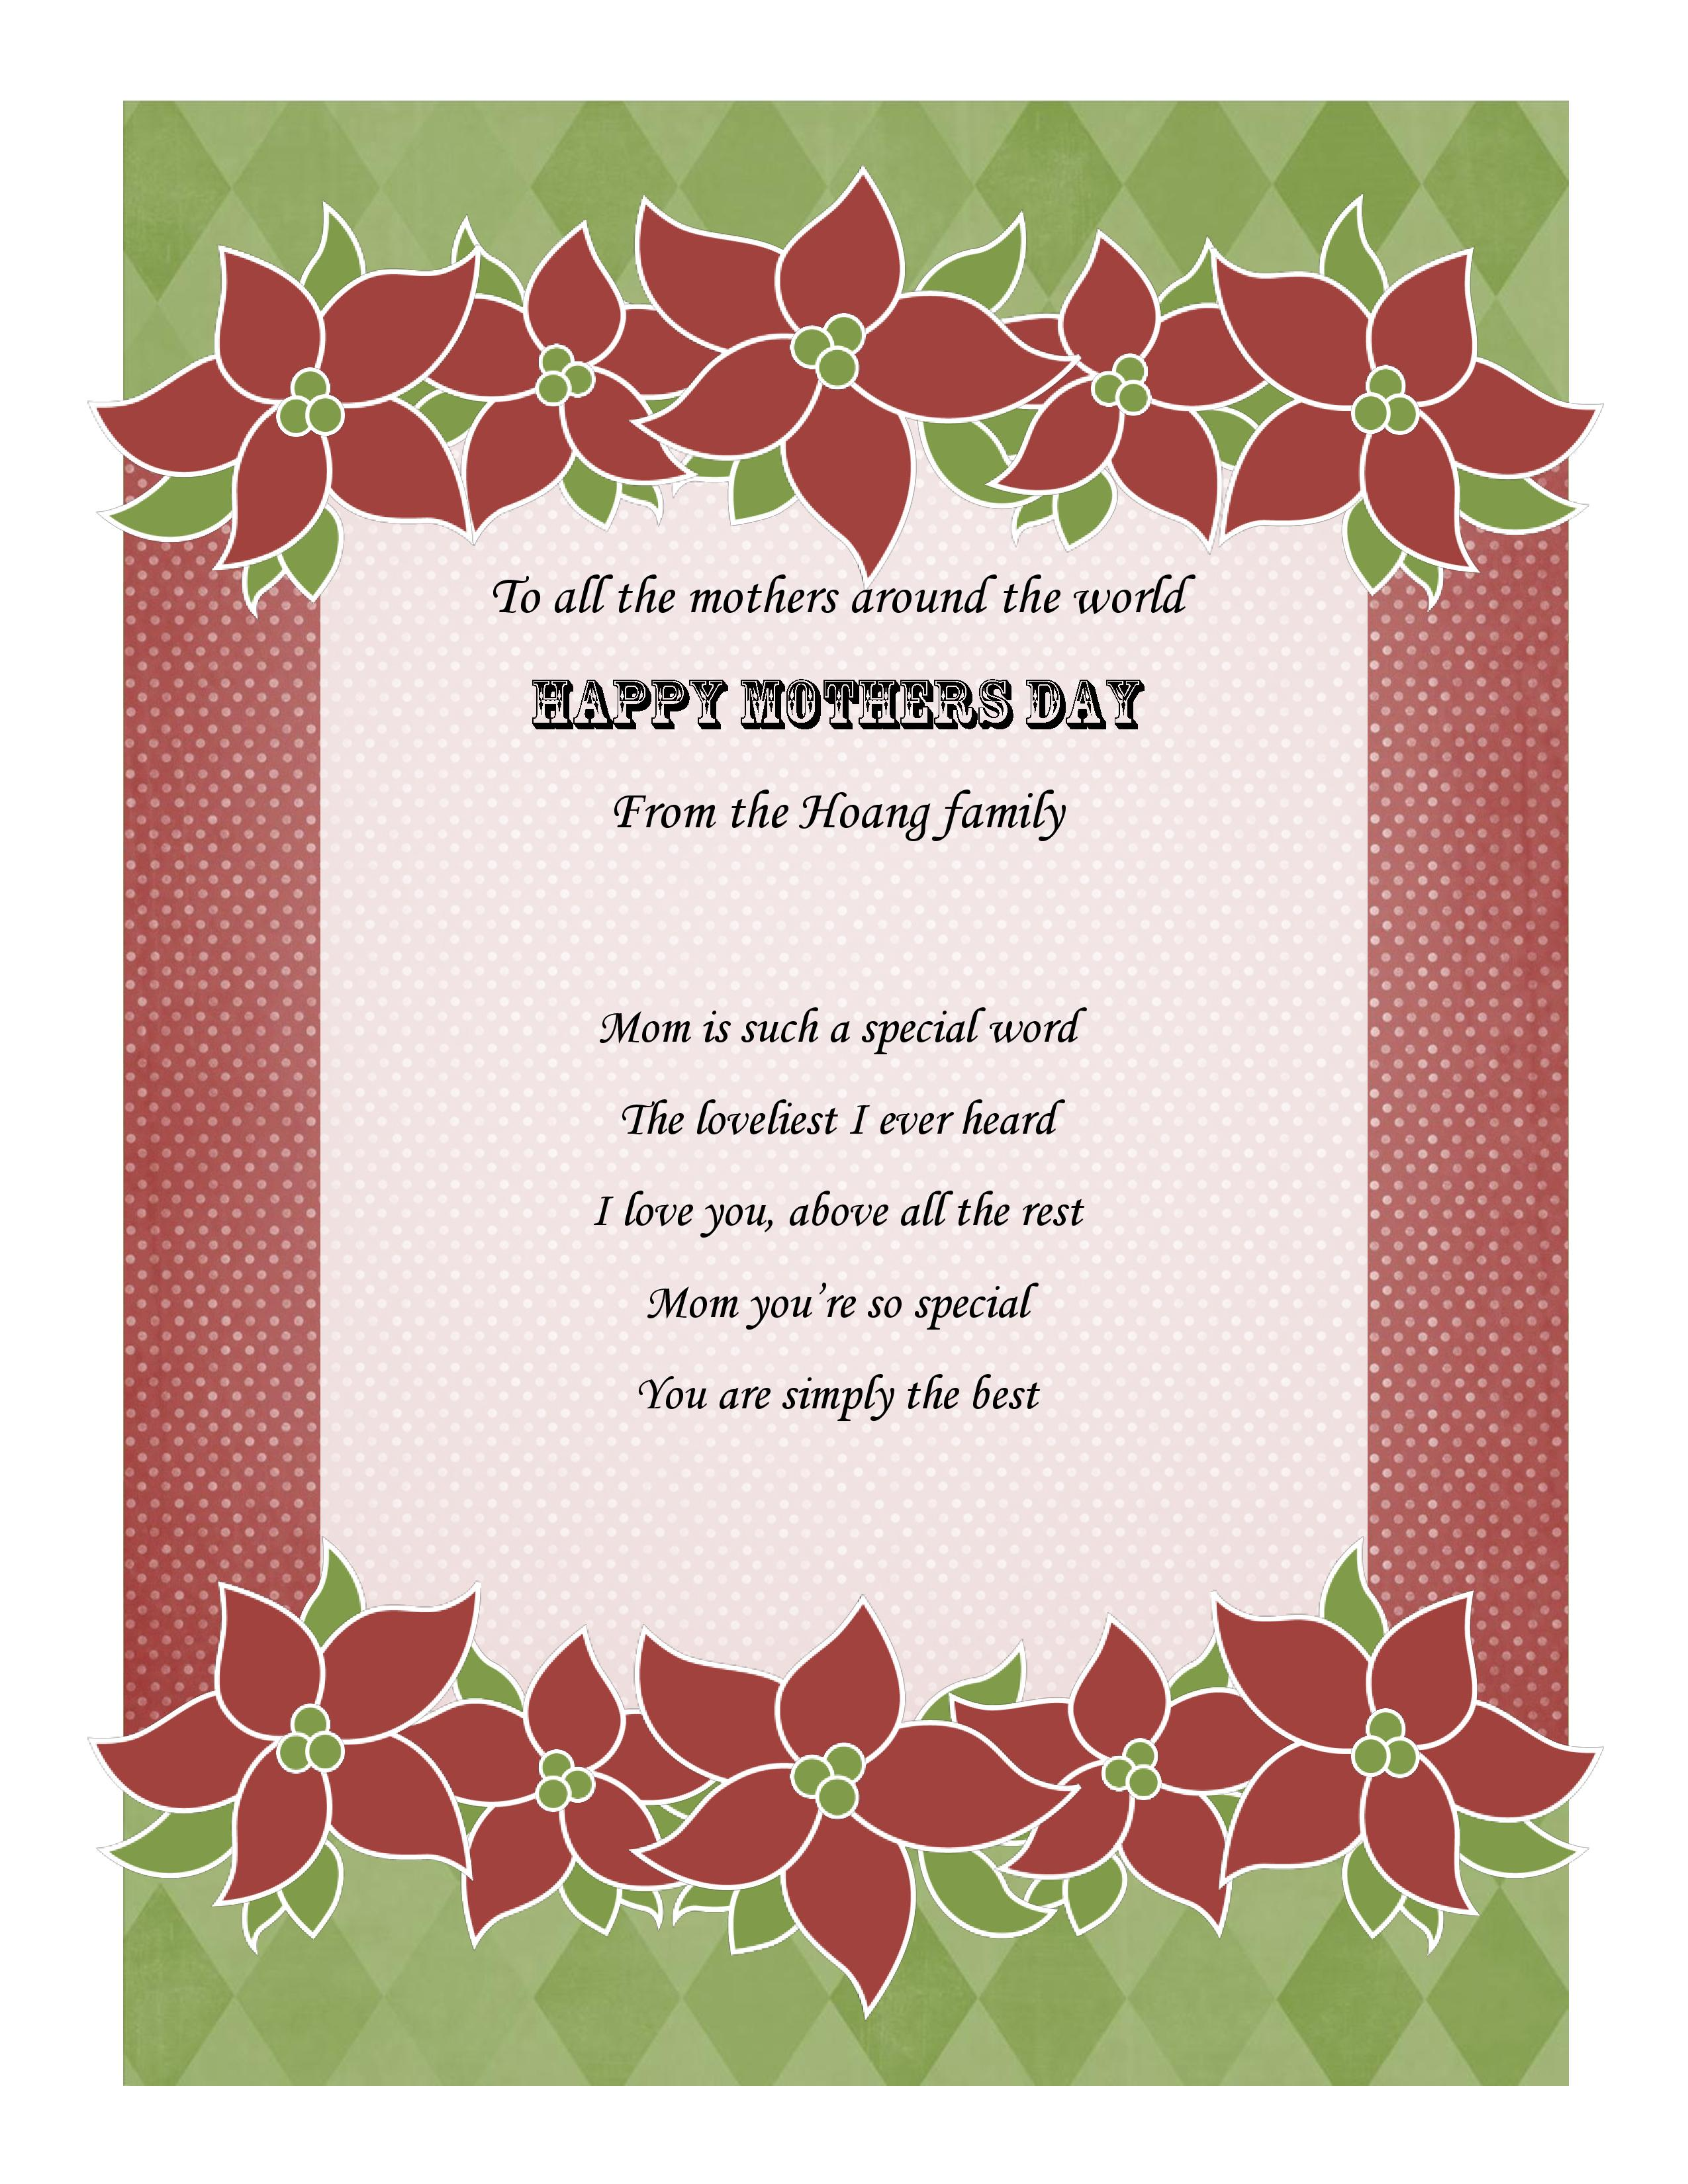 Spanish Mothers Day Poems